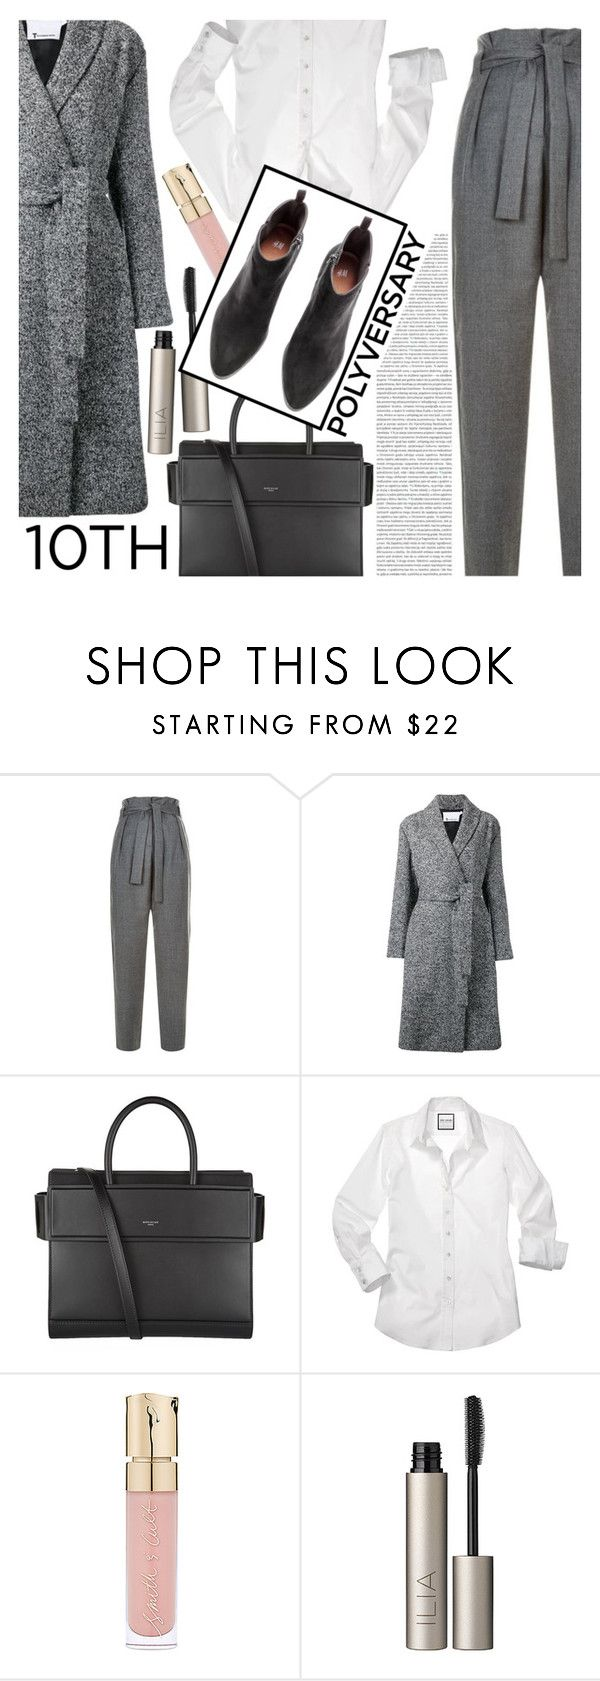 """""""Celebrate Our 10th Polyversary!"""" by valentin-bossio ❤ liked on Polyvore featuring Maje, Alexander Wang, Givenchy, Smith & Cult, Ilia, Oris, GetTheLook, polyversary, contestentry and fashionset"""